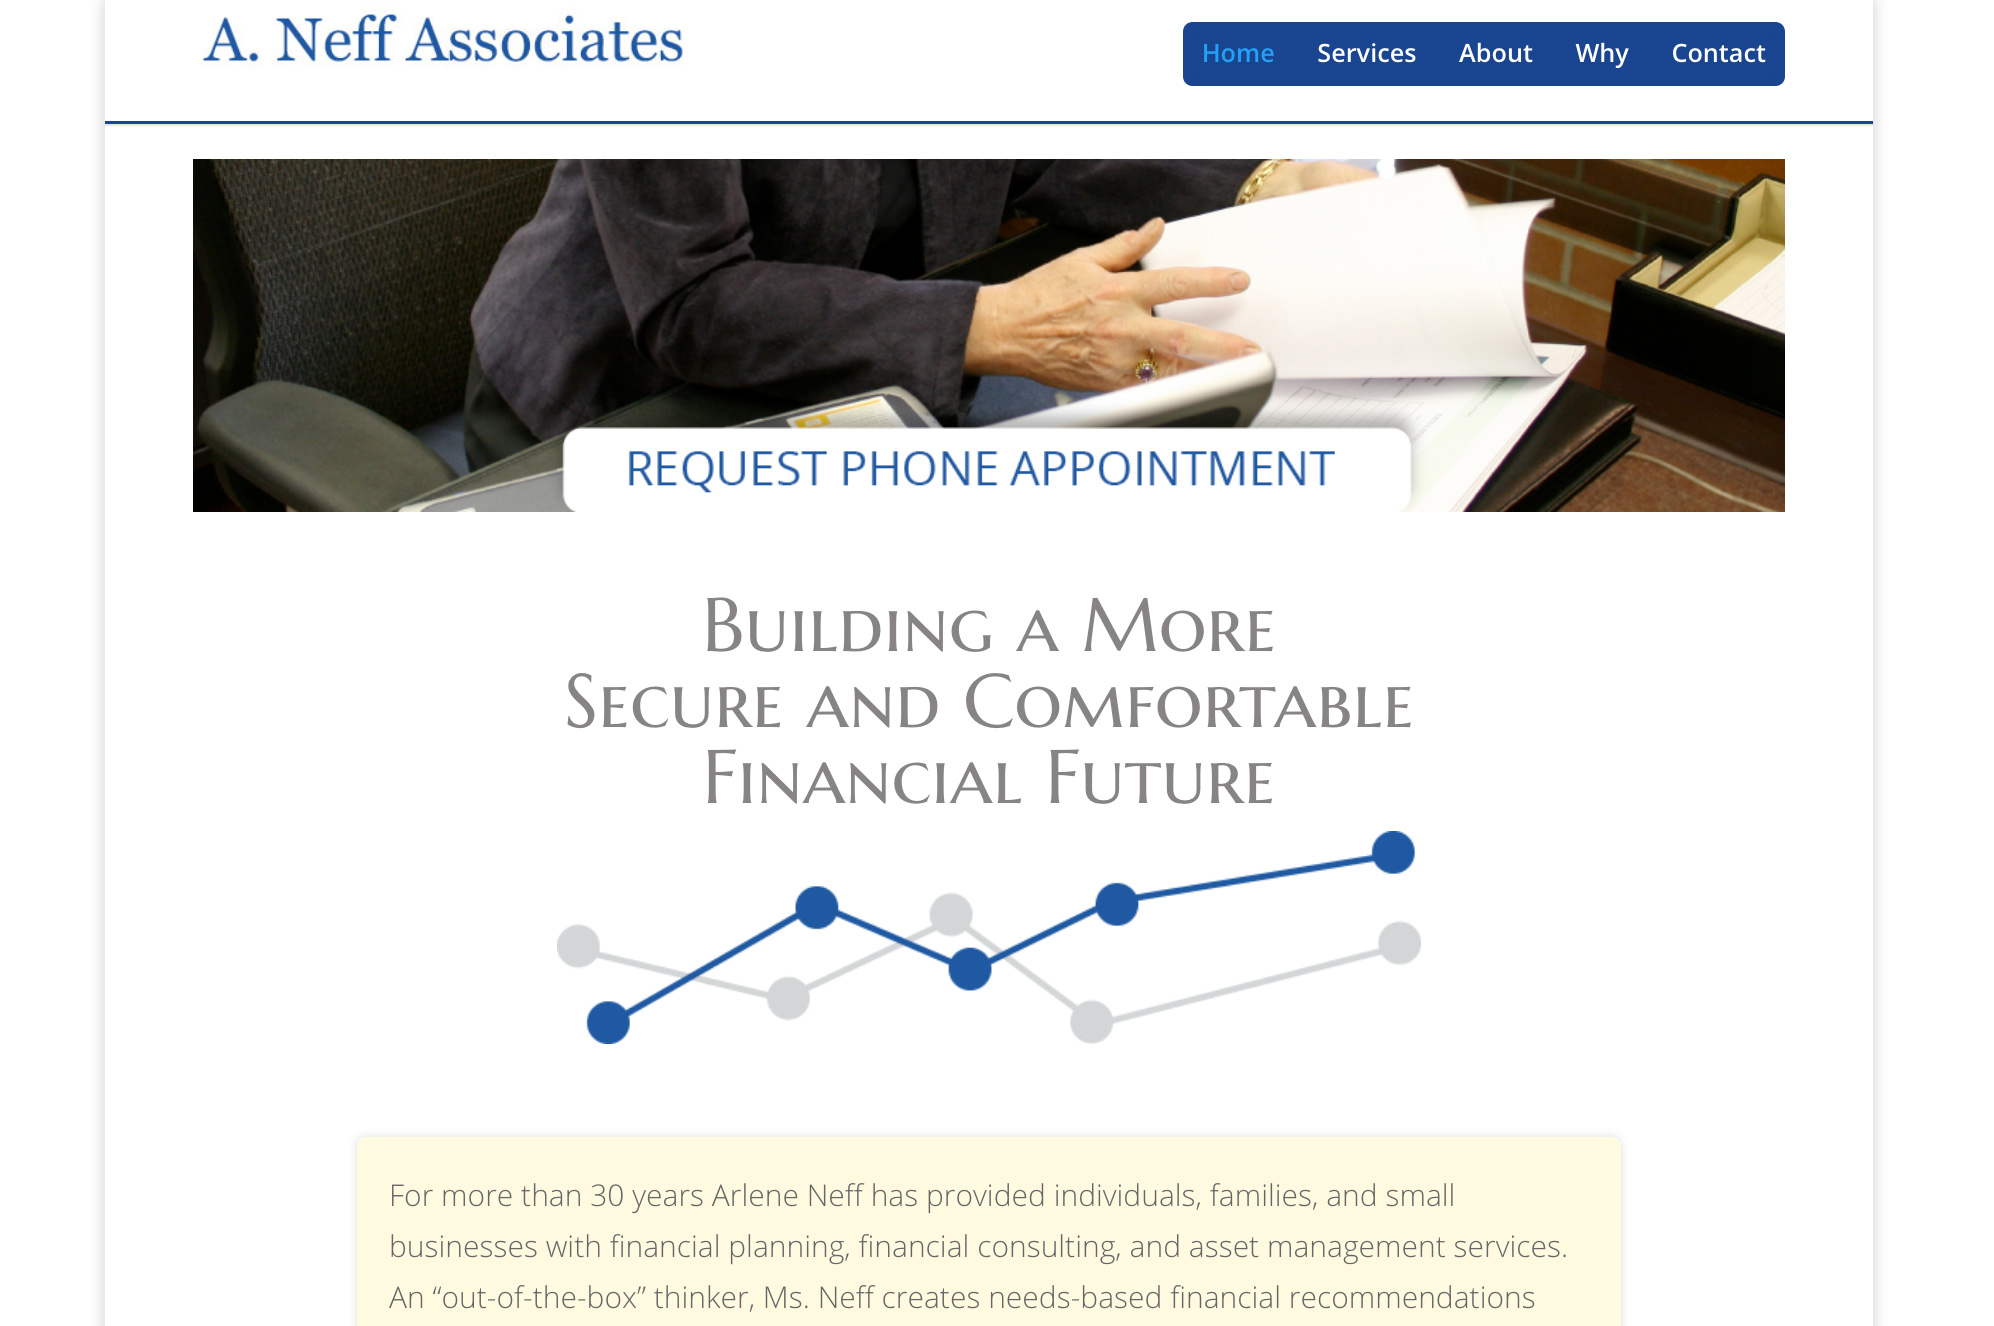 web site design for financial advisors and consultants